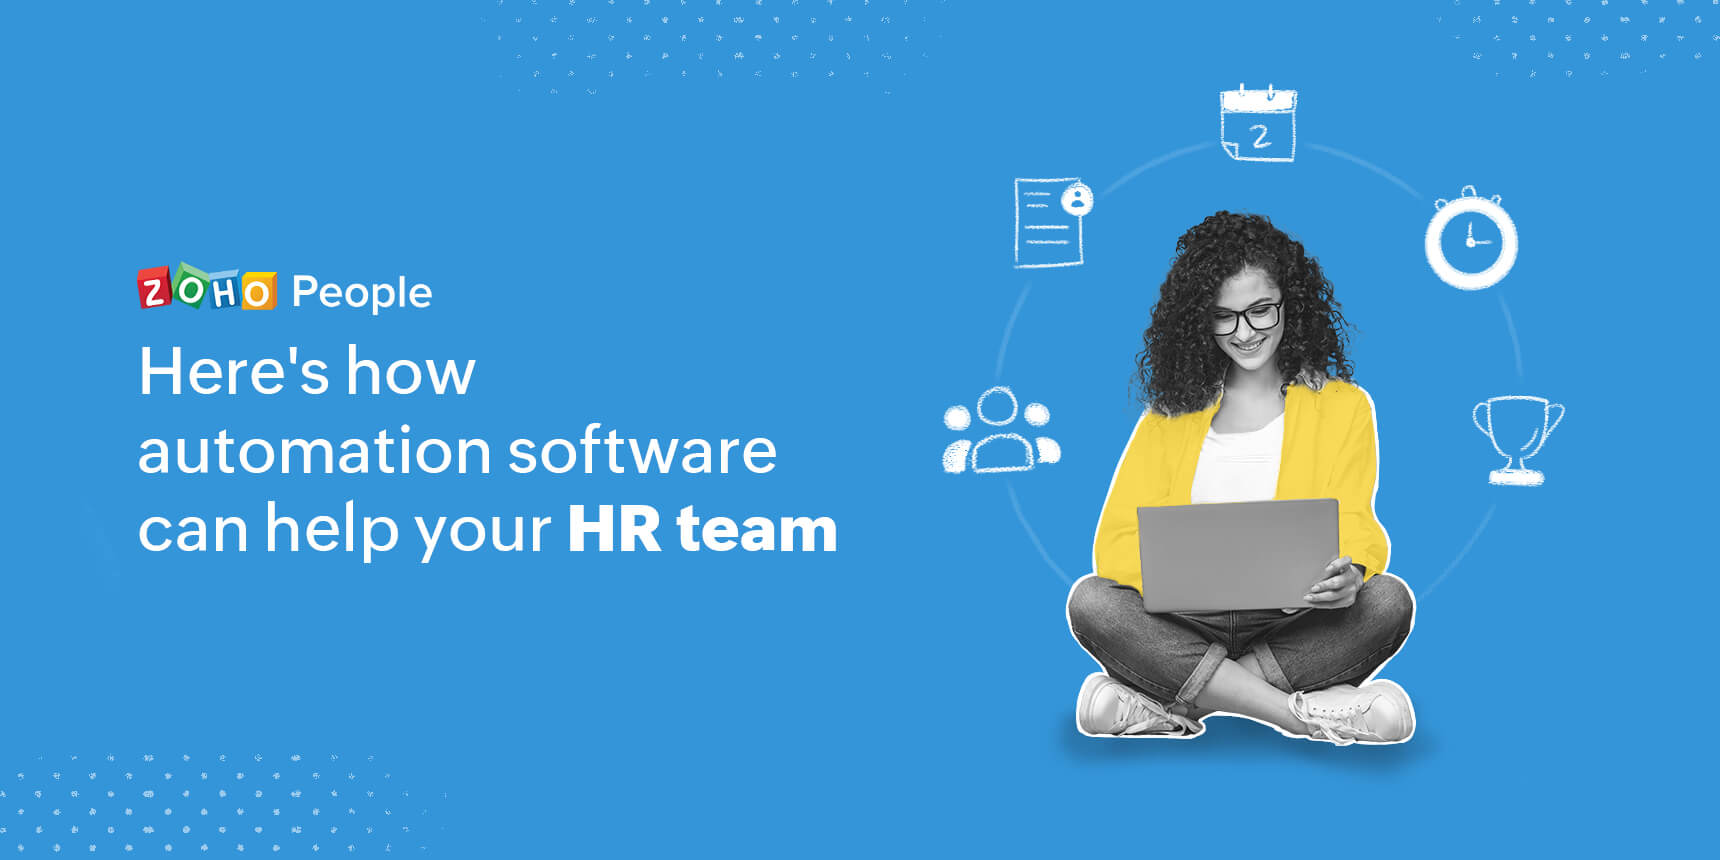 What can automation software do for hr professionals?